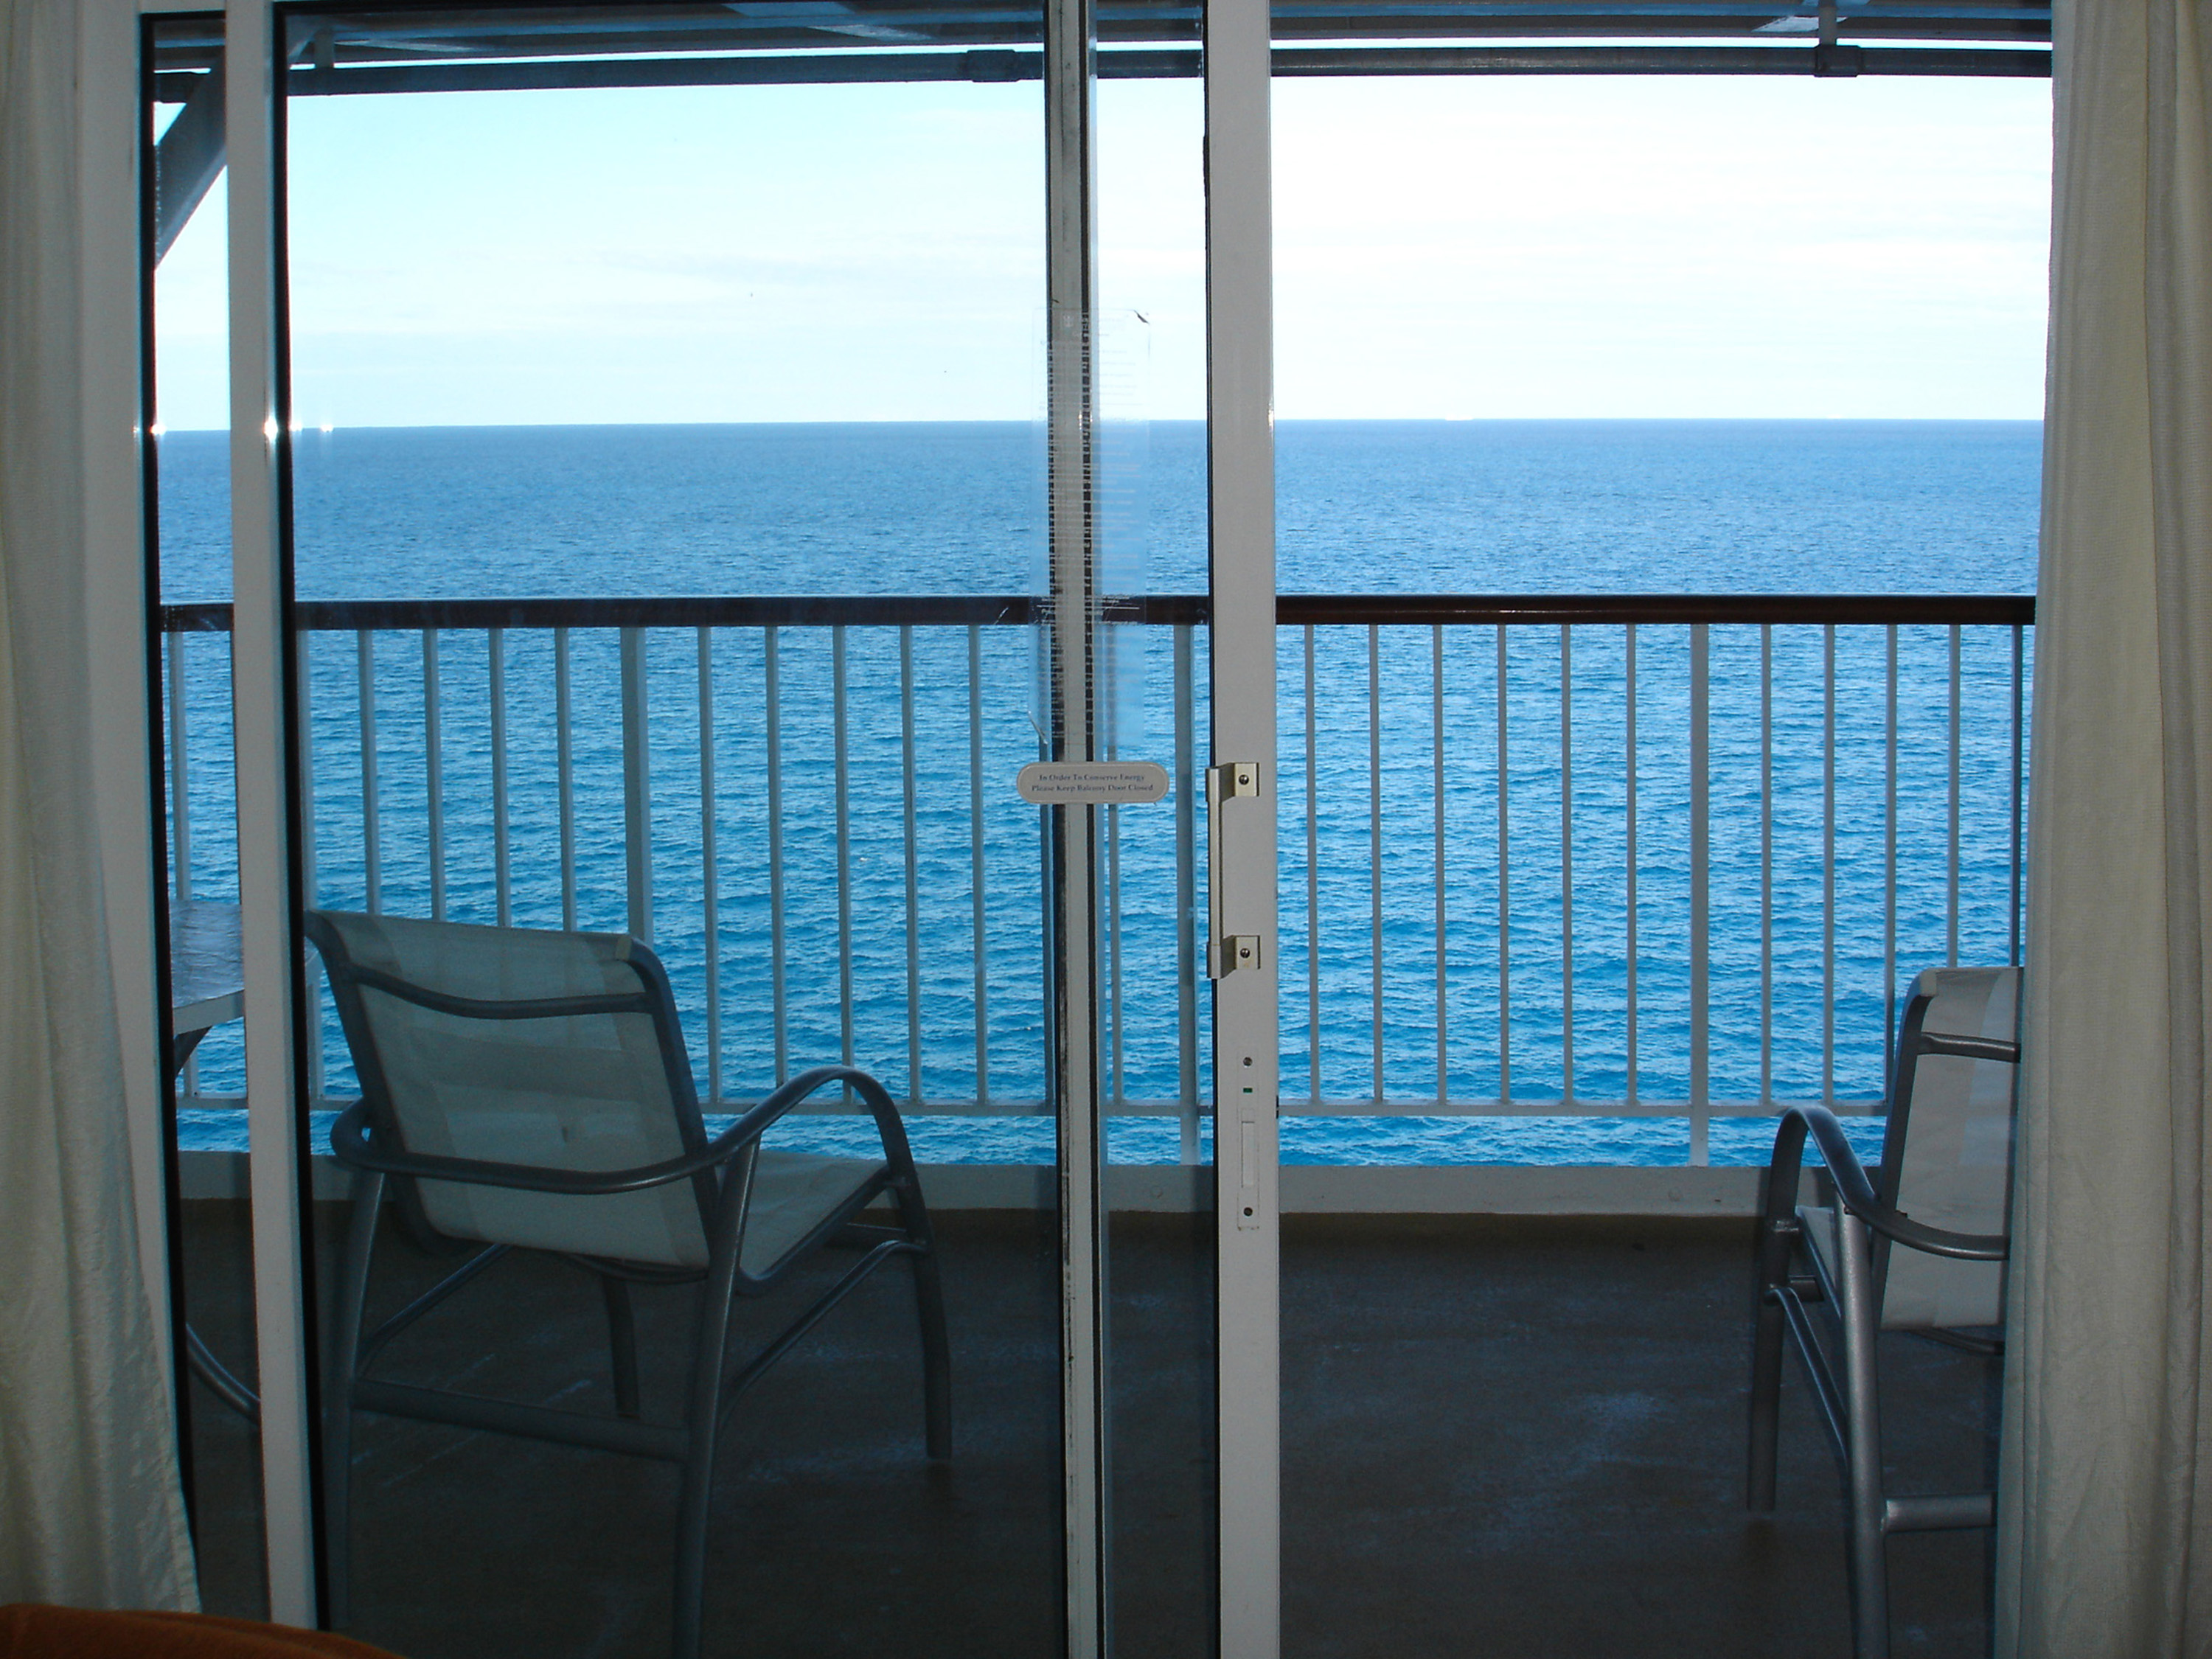 Free Stock Photo 6510 Balcony with ocean view  freeimageslive